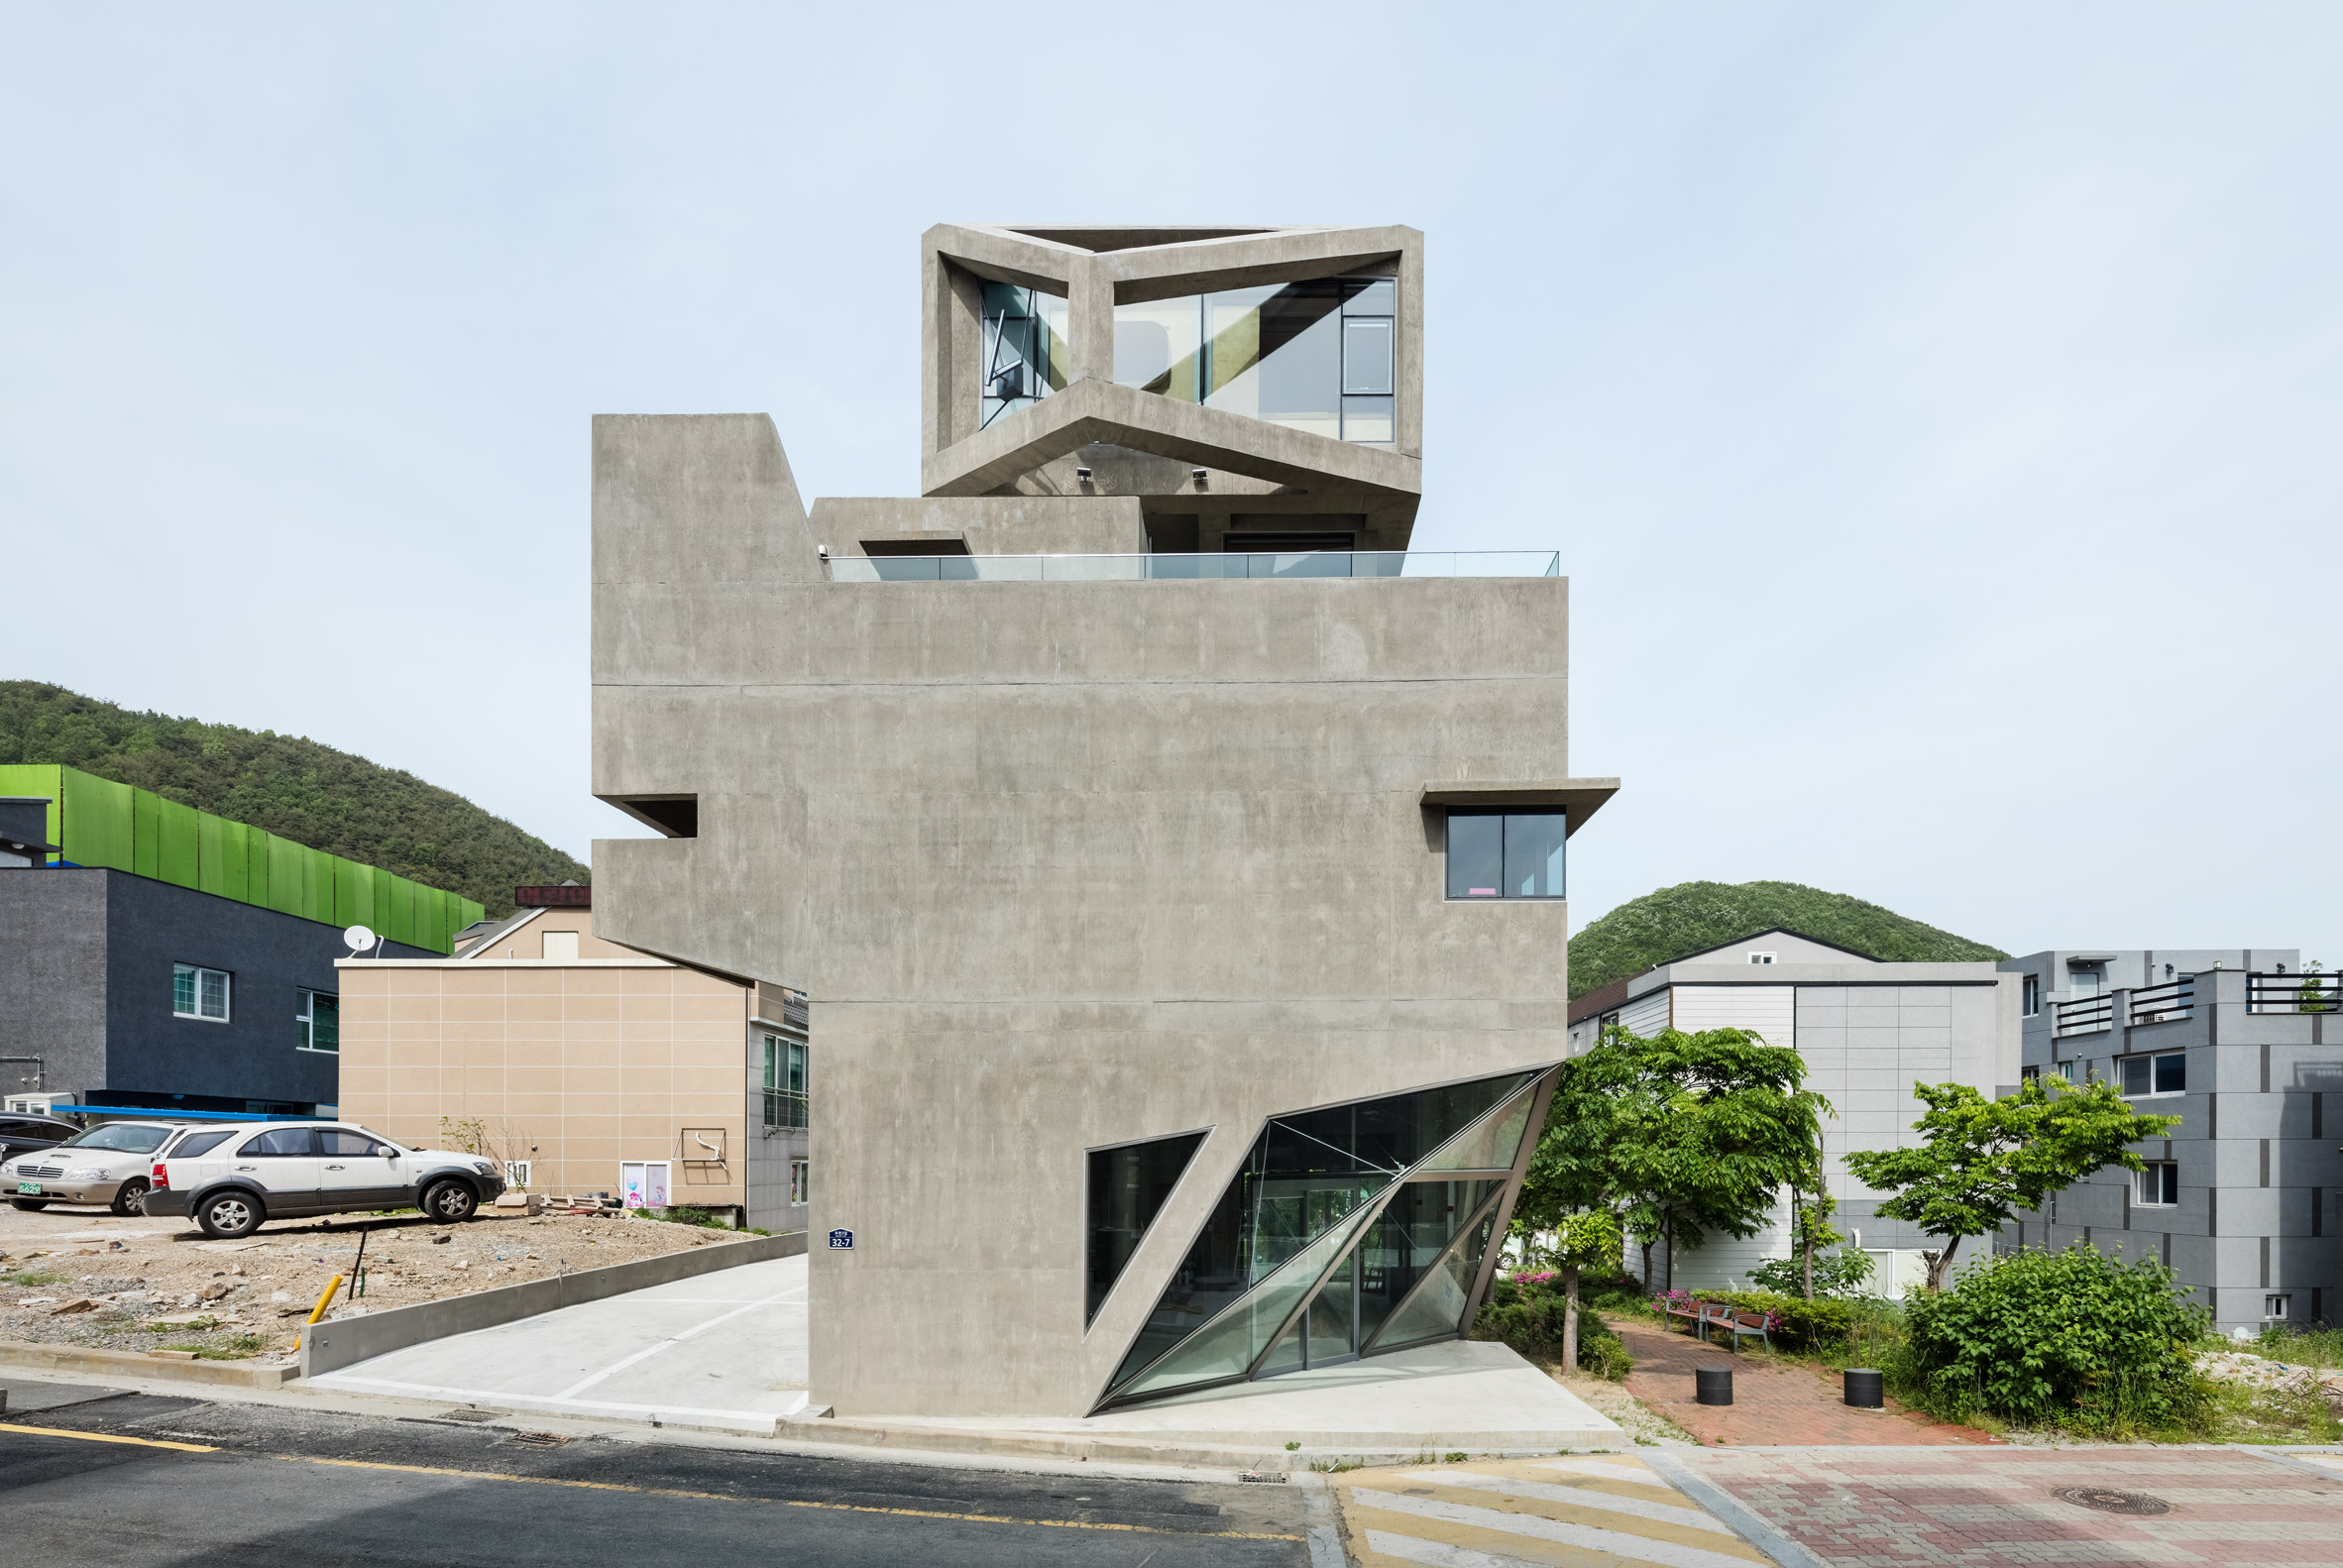 Moon Hoon creates housing with owl-like features in South Korea